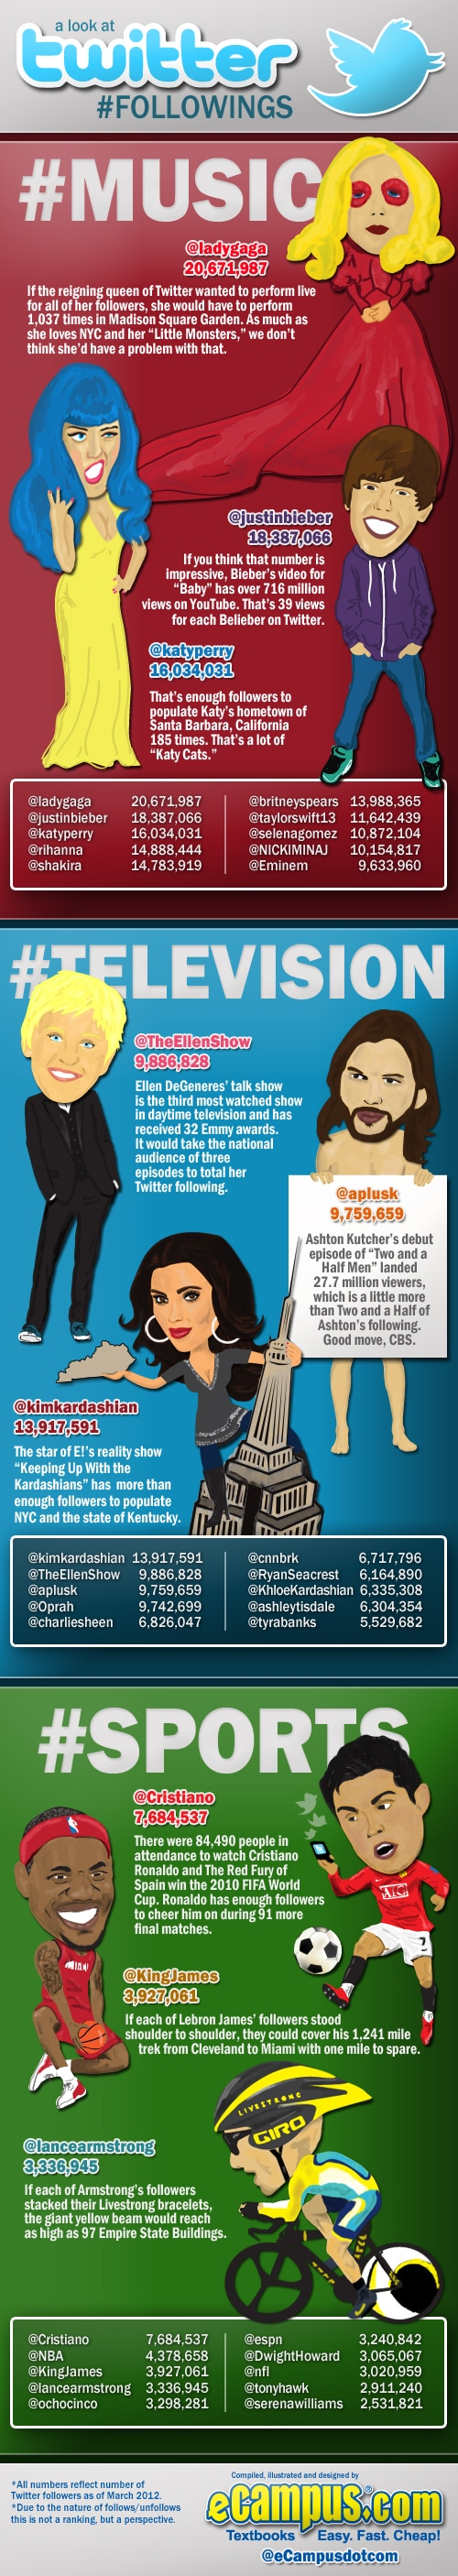 A Look at Celeb Twitter Followers (Infographic)